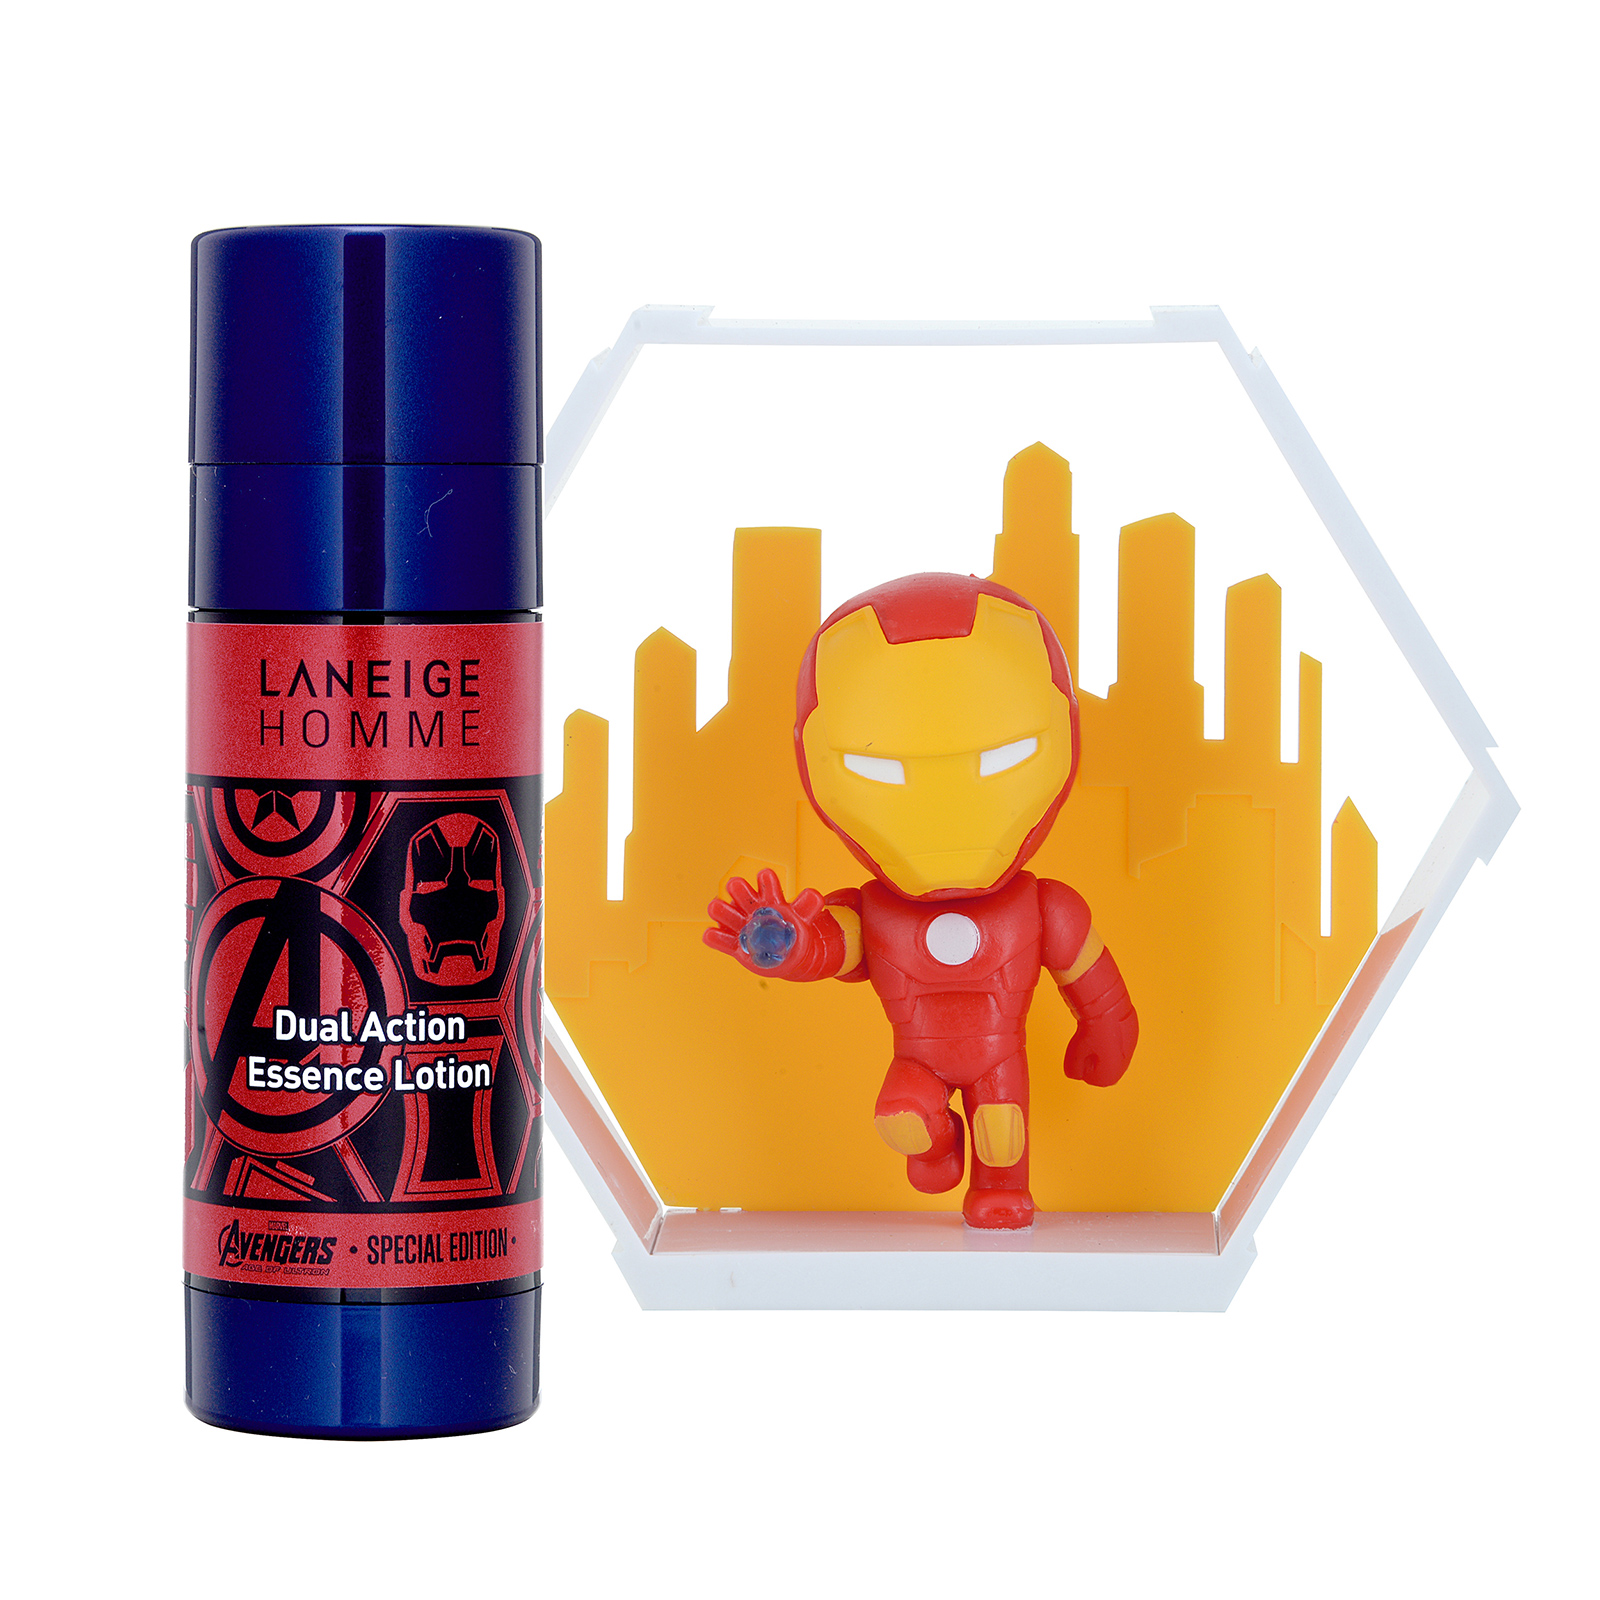 Laneige Homme Homme Dual Action Essence Lotion Set with Iron Man Figure 1set, 2pcs ALN0100188-000-00